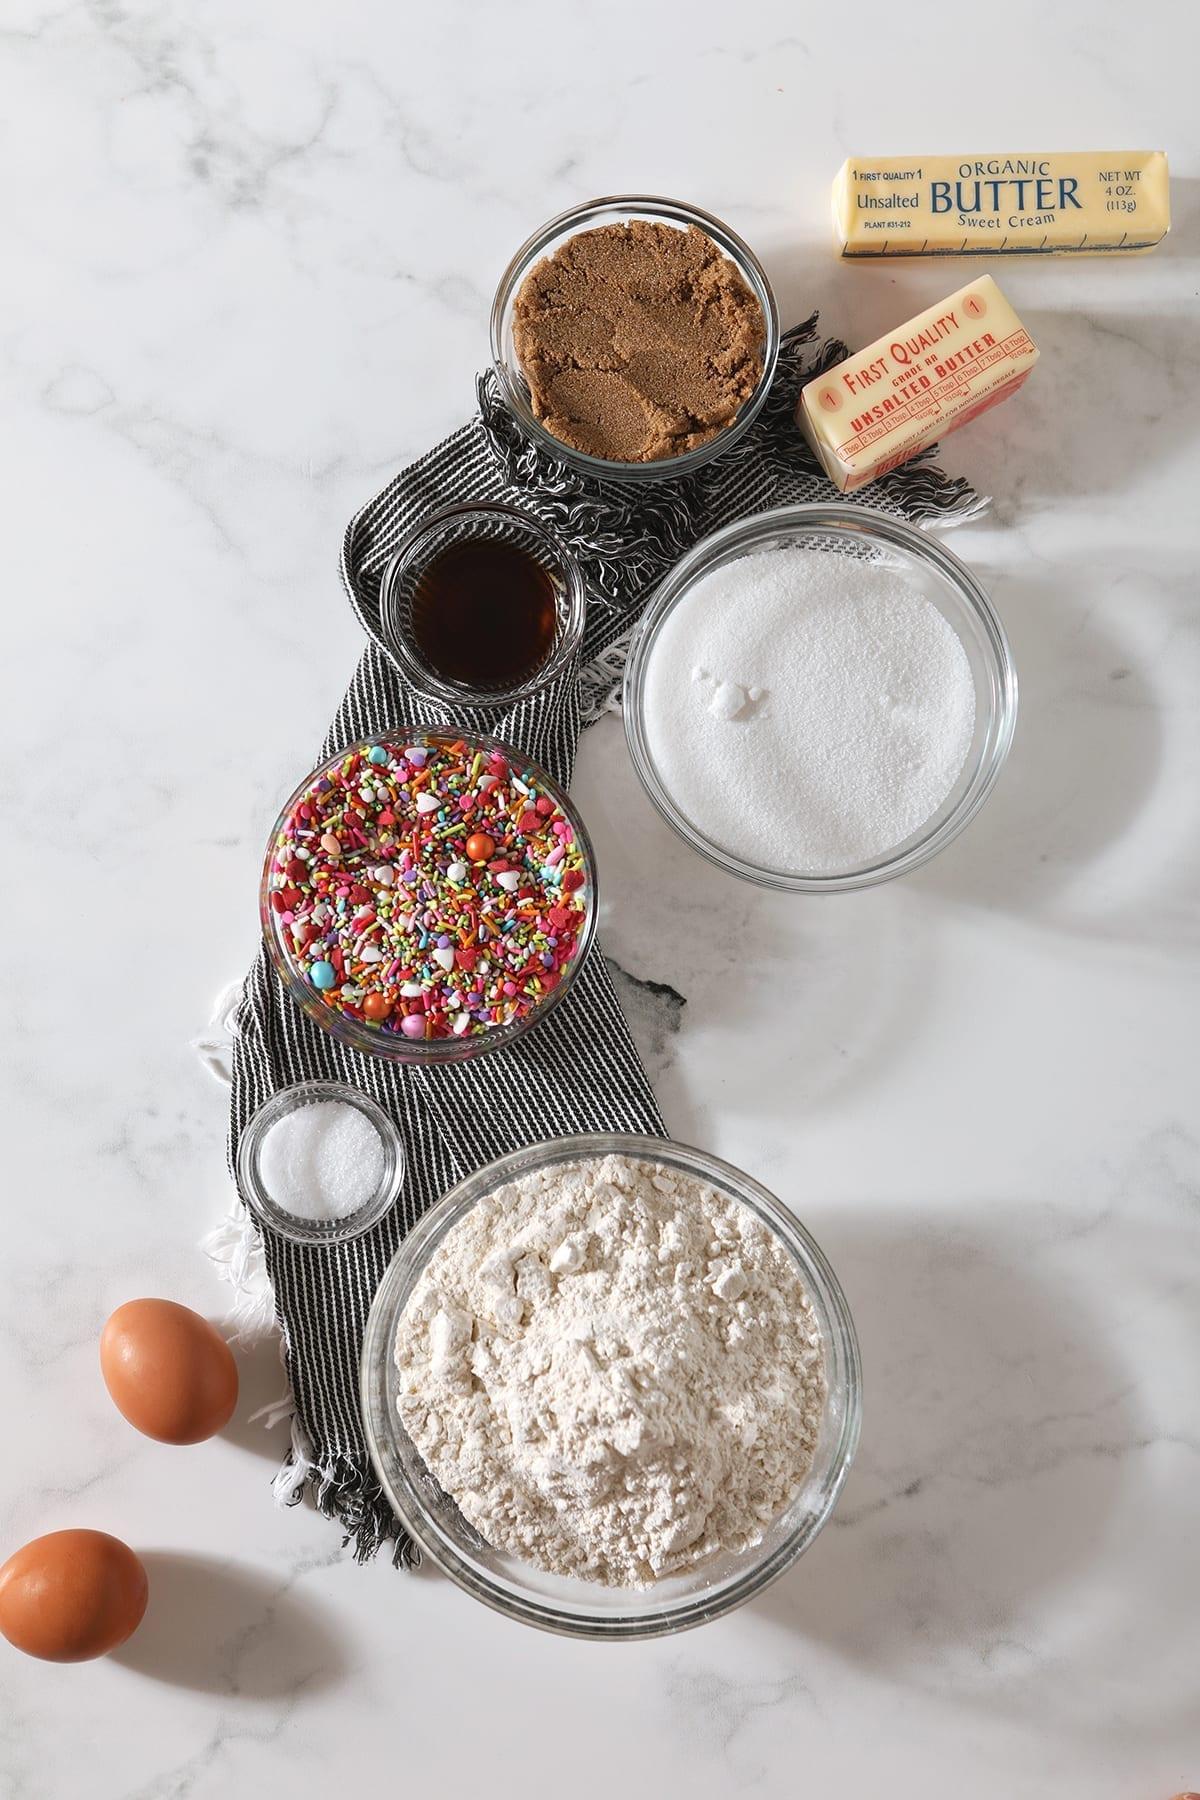 Flour, eggs, sprinkles, sugars, butter and more from above on a marble tabletop